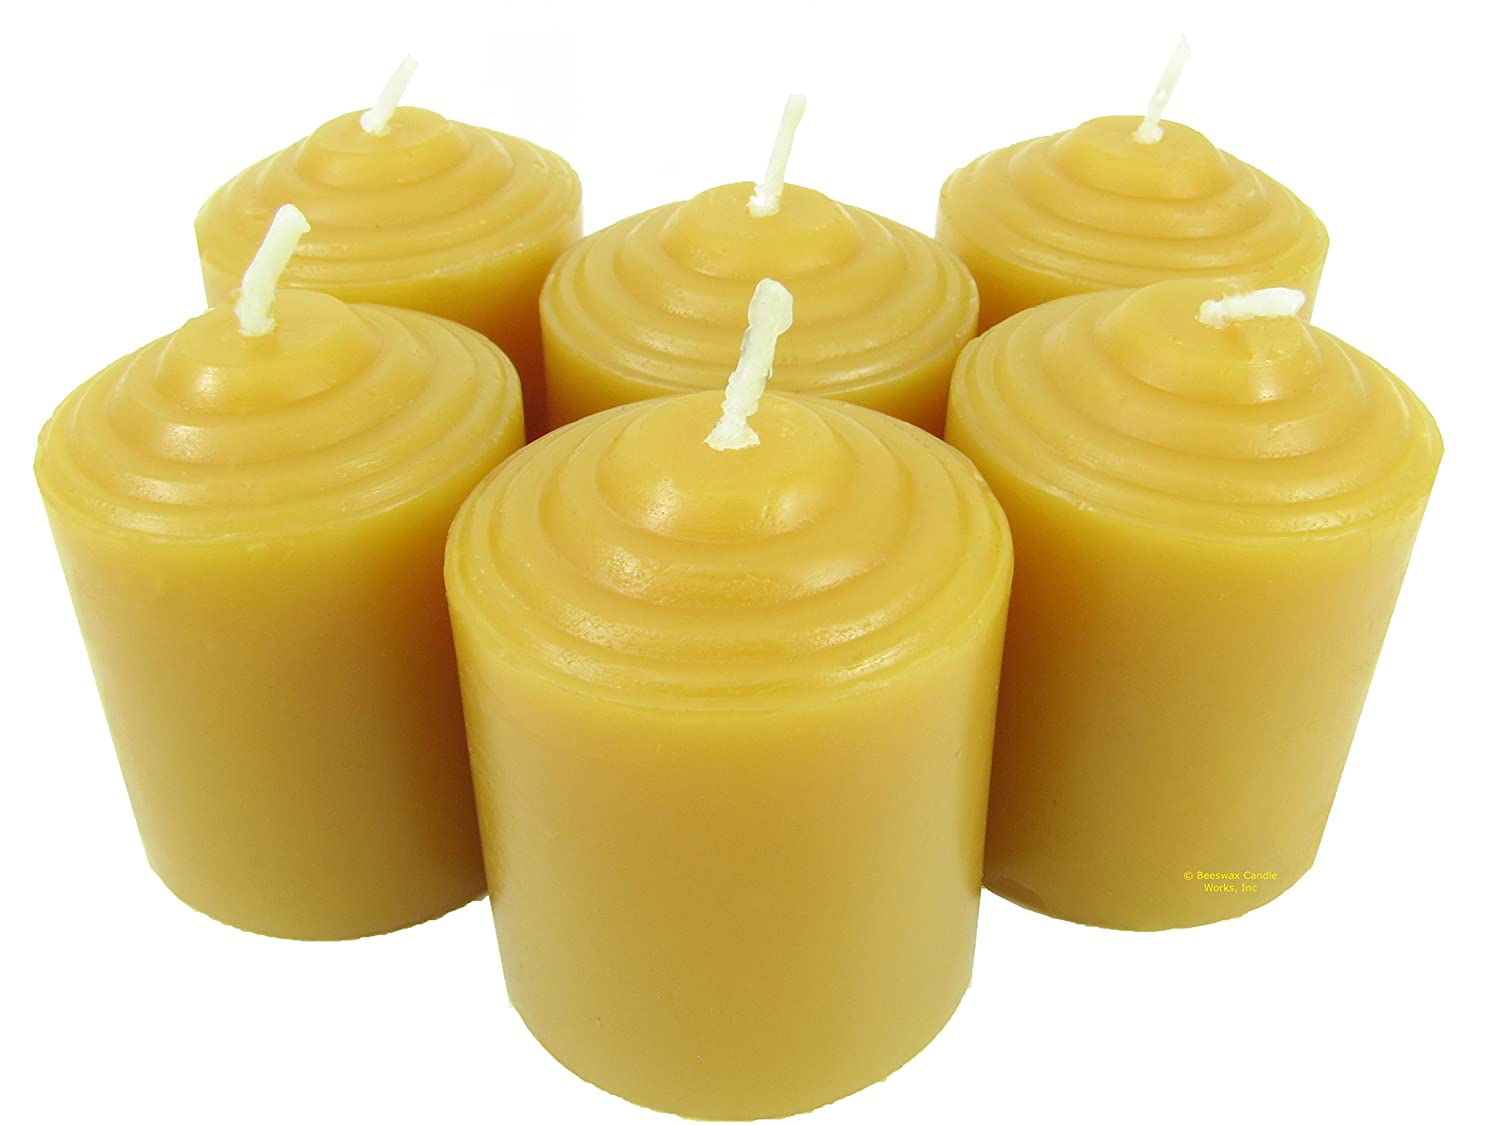 100% Pure USA Beeswax 10 Hour Votive (Pack of 12) Beeswax Candle Works Inc